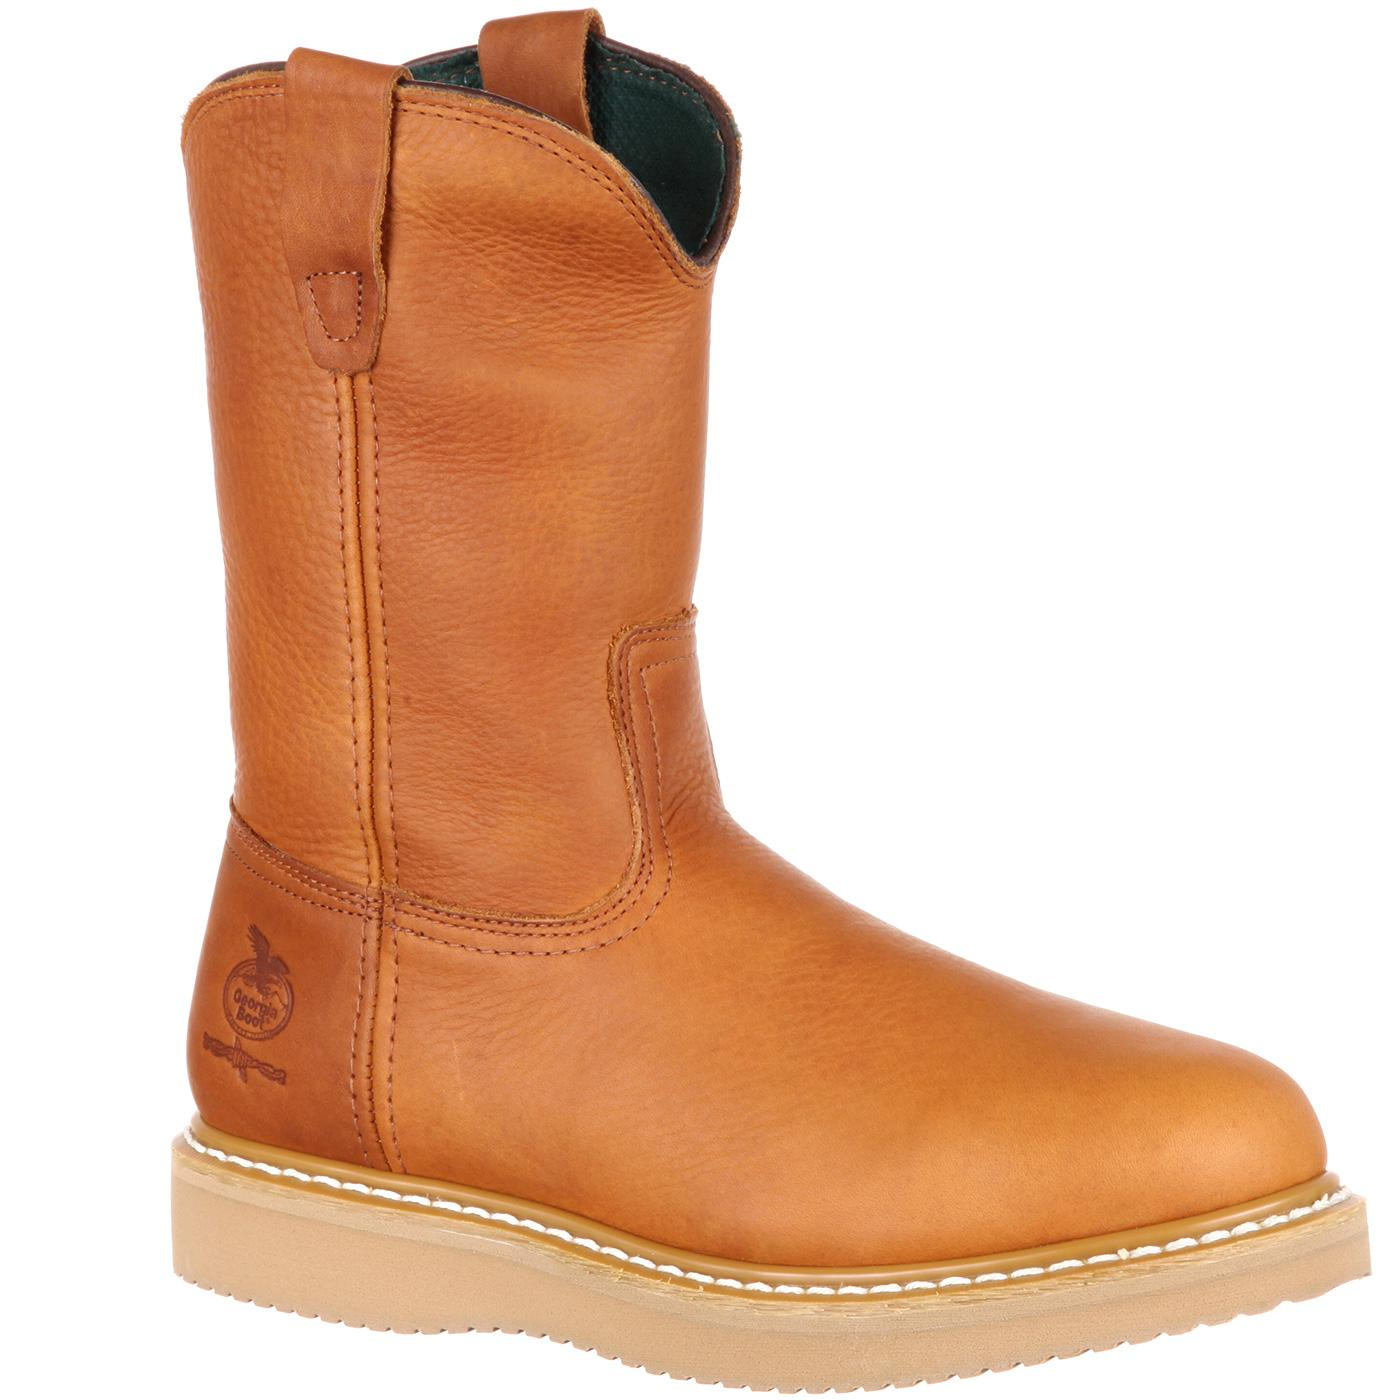 aefd2d3e311adc Wellington Work Boots for Farm   Ranch Boot needs by Georgia Boot G5153